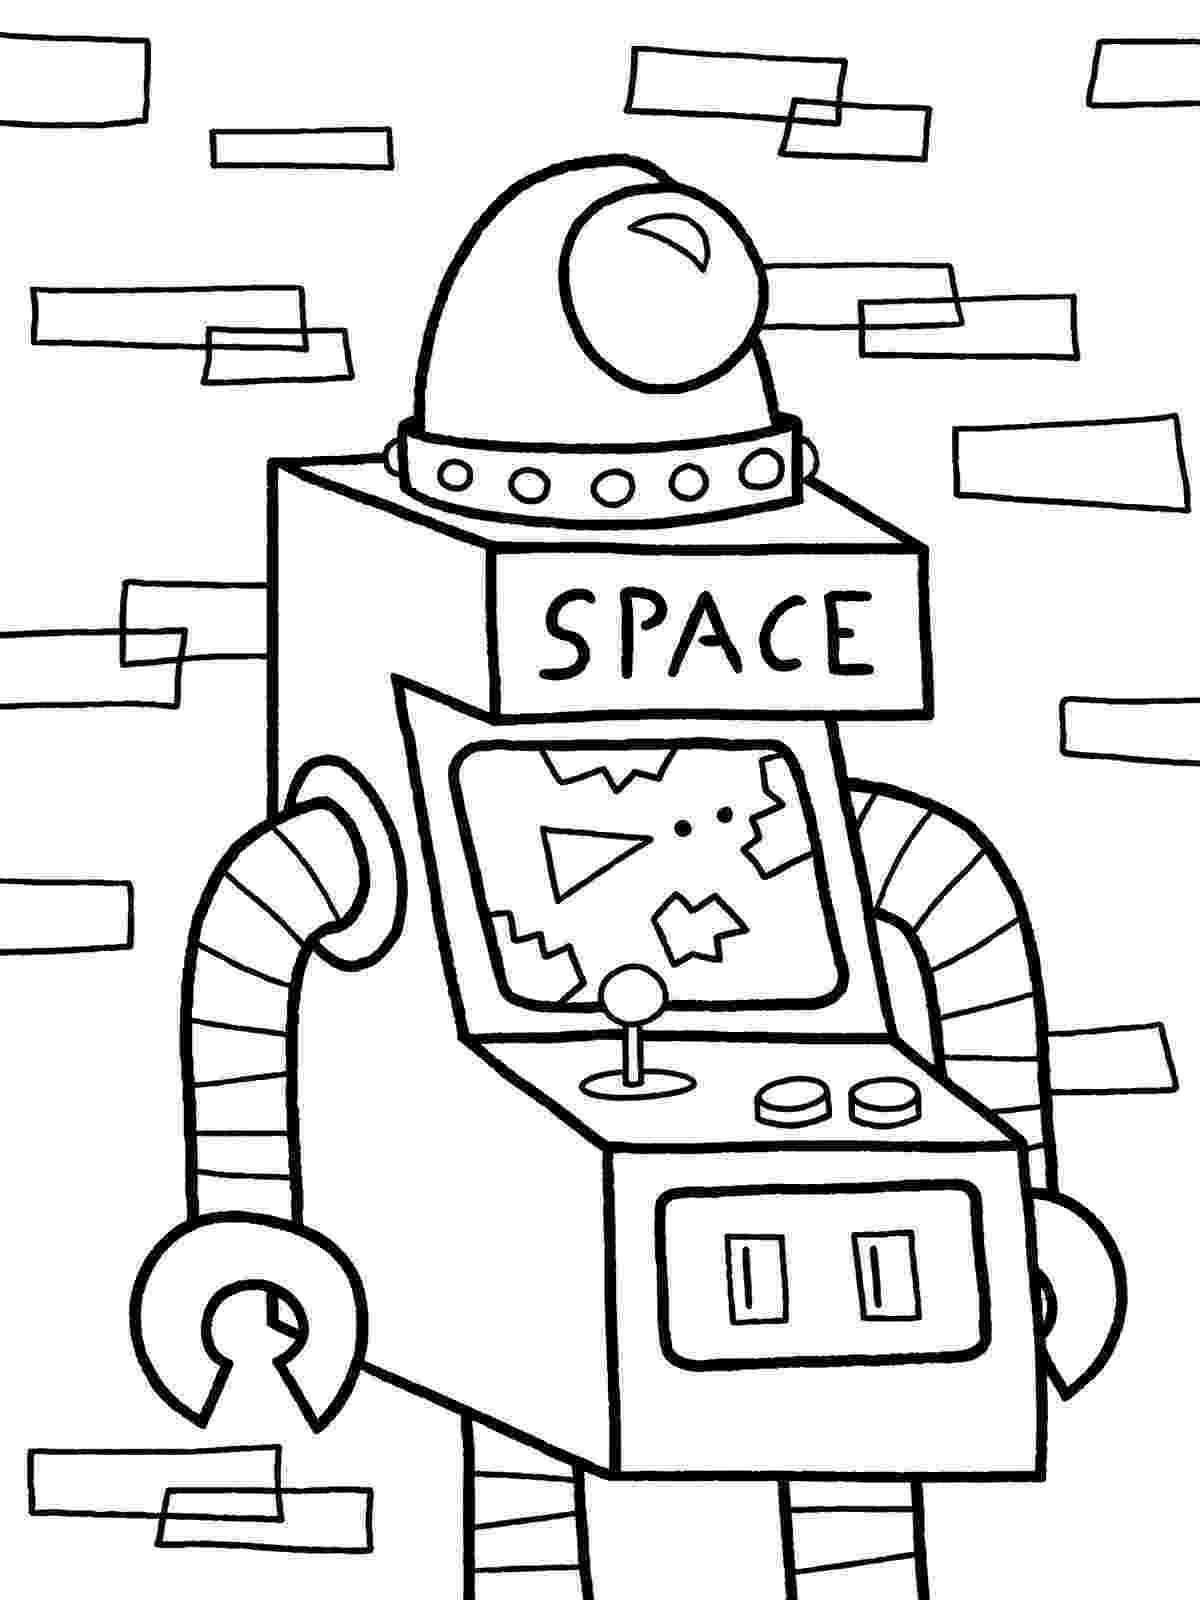 robot coloring sheets witty title coming soon october 2011 sheets robot coloring 1 1